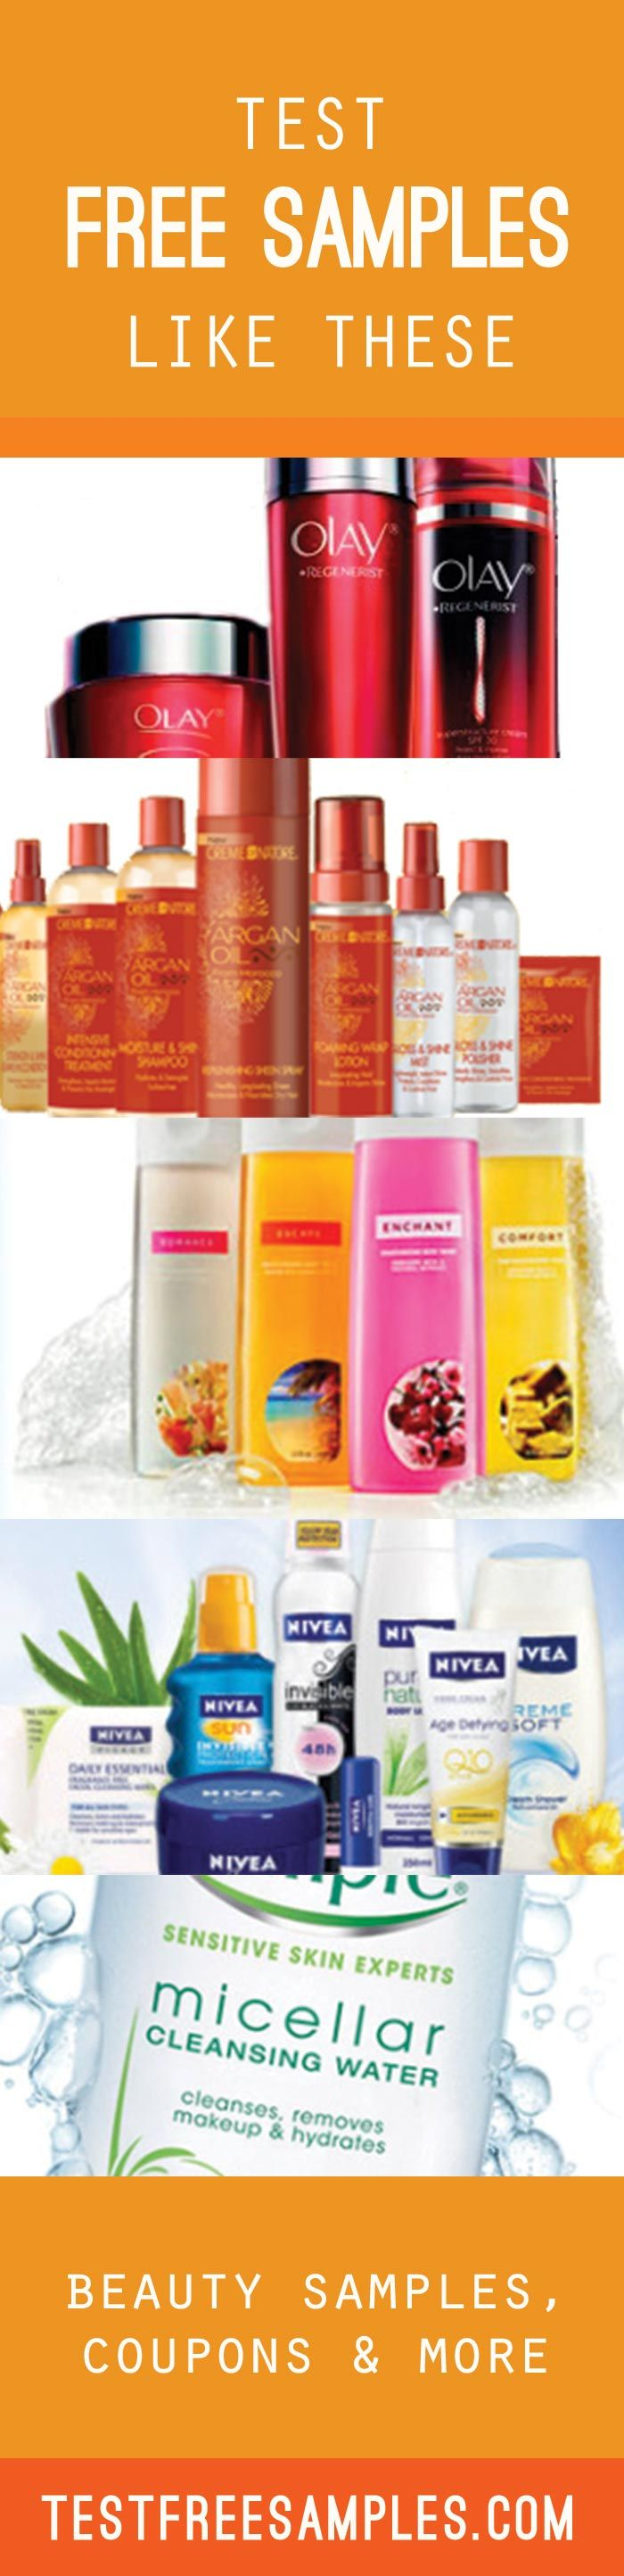 Best Free Samples - Tons of Beauty Samples and Free Product Offers http://testfreesamples.com/category/free-beauty-samples